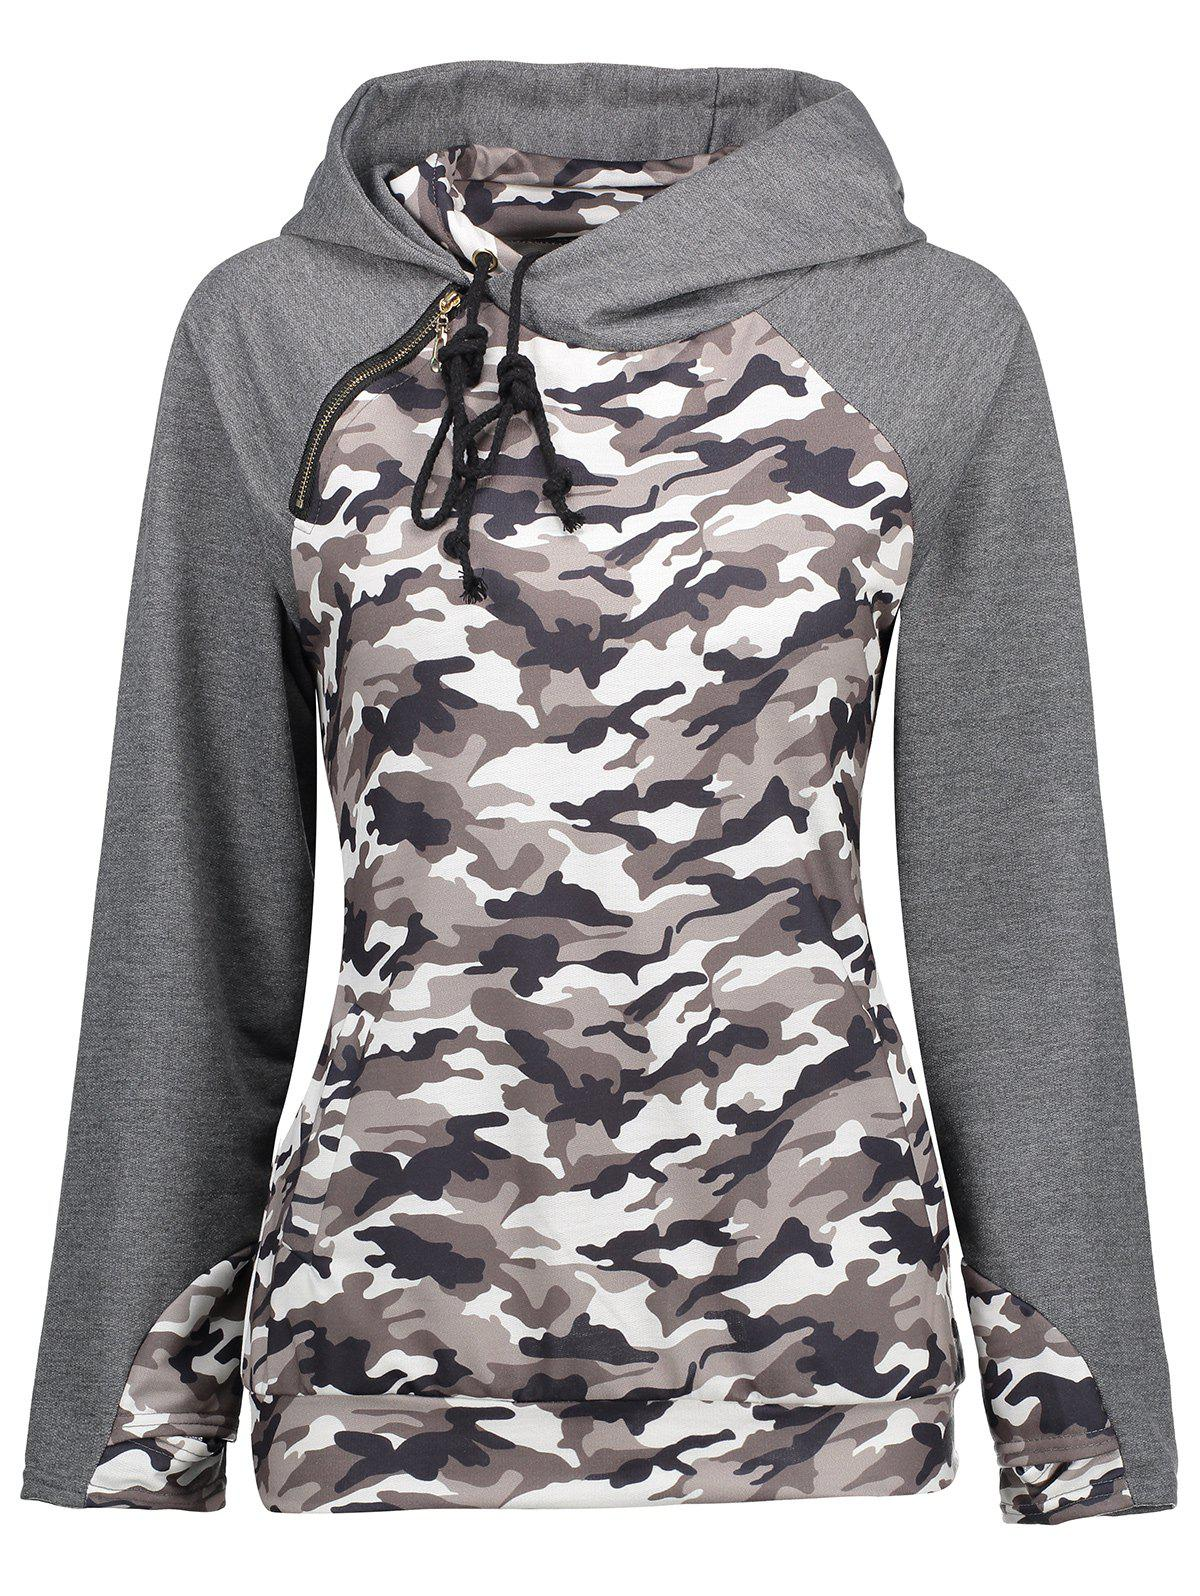 Camouflage Raglan Sleeve Hoodie with Pockets - COLORMIX XL